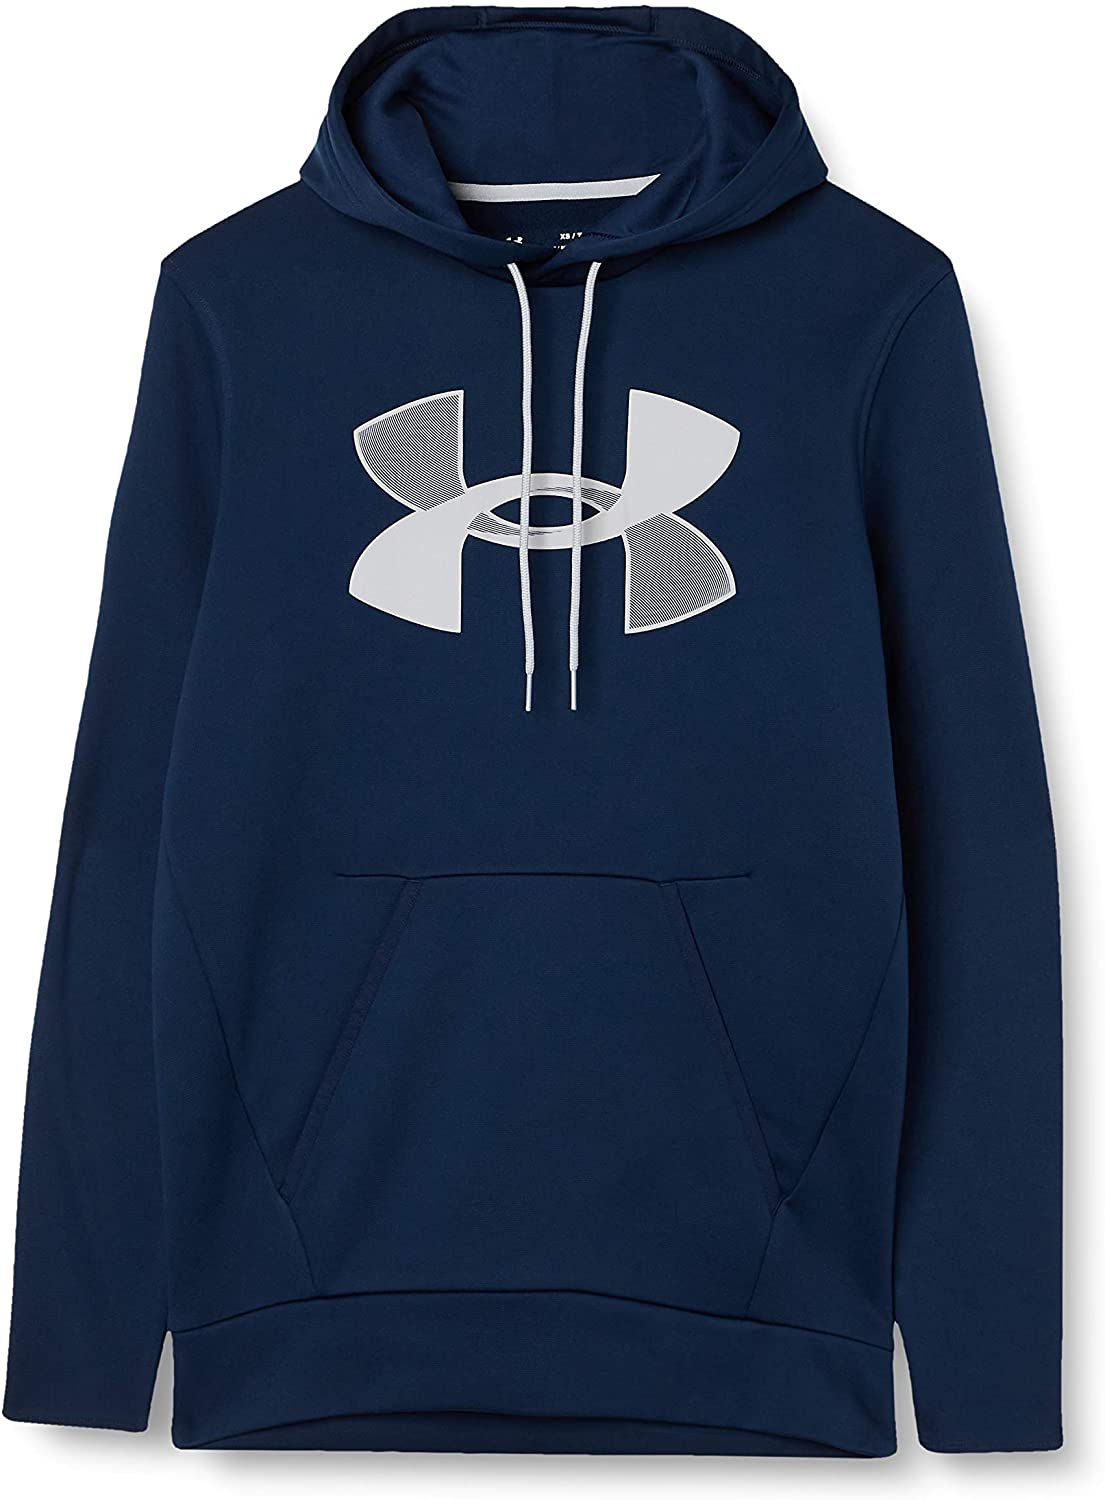 Under Armour Men's Fleece Big Logo Hoodie in navy blue